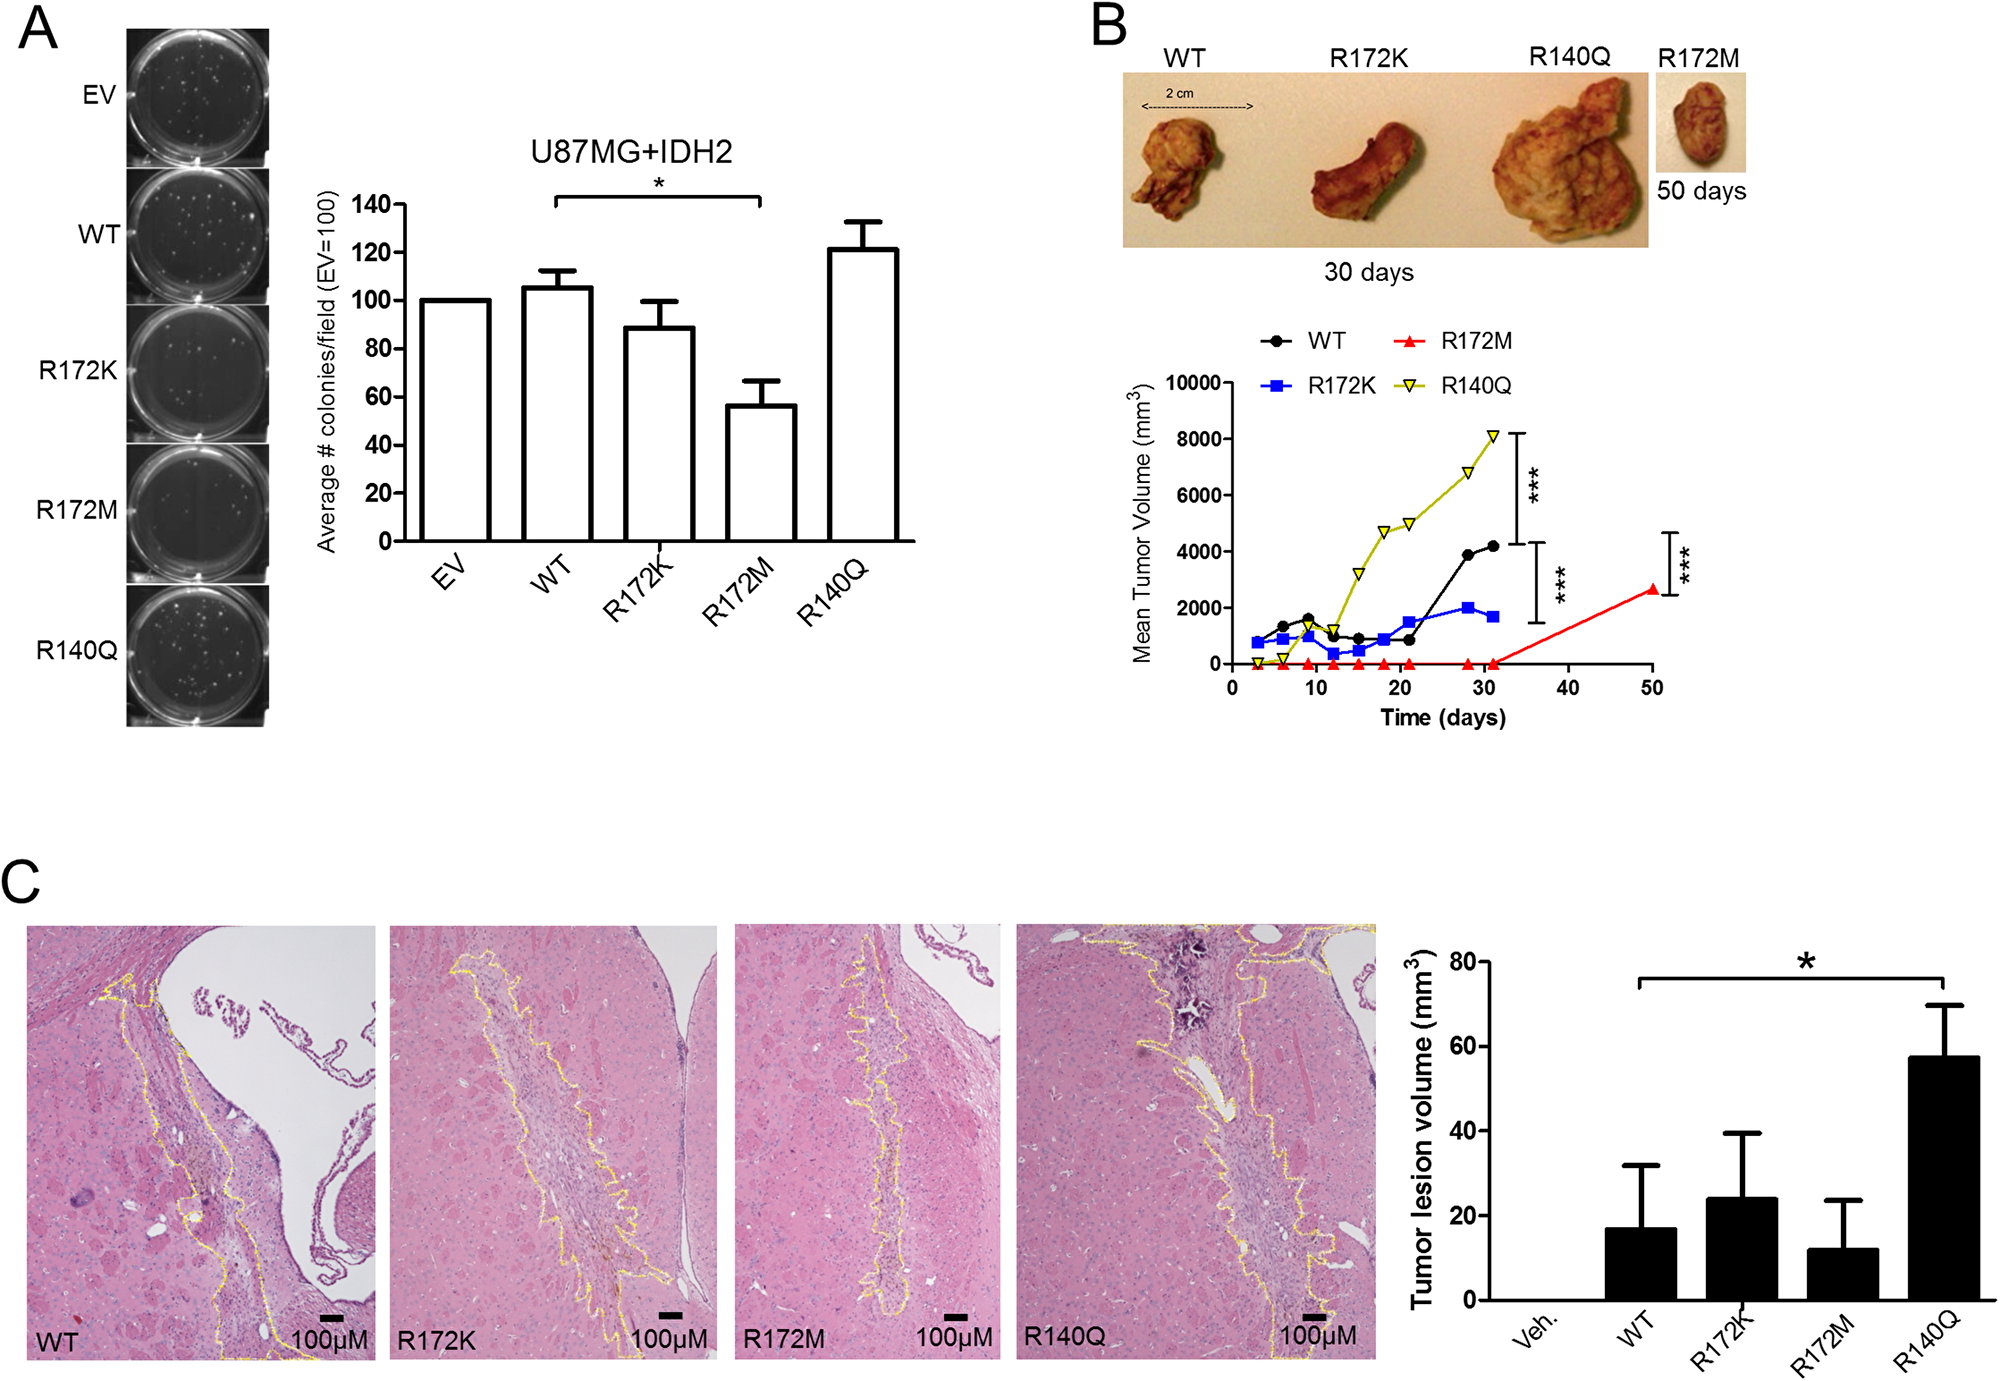 IDH2-R172M and IDH2-R140Q affect tumor growth.